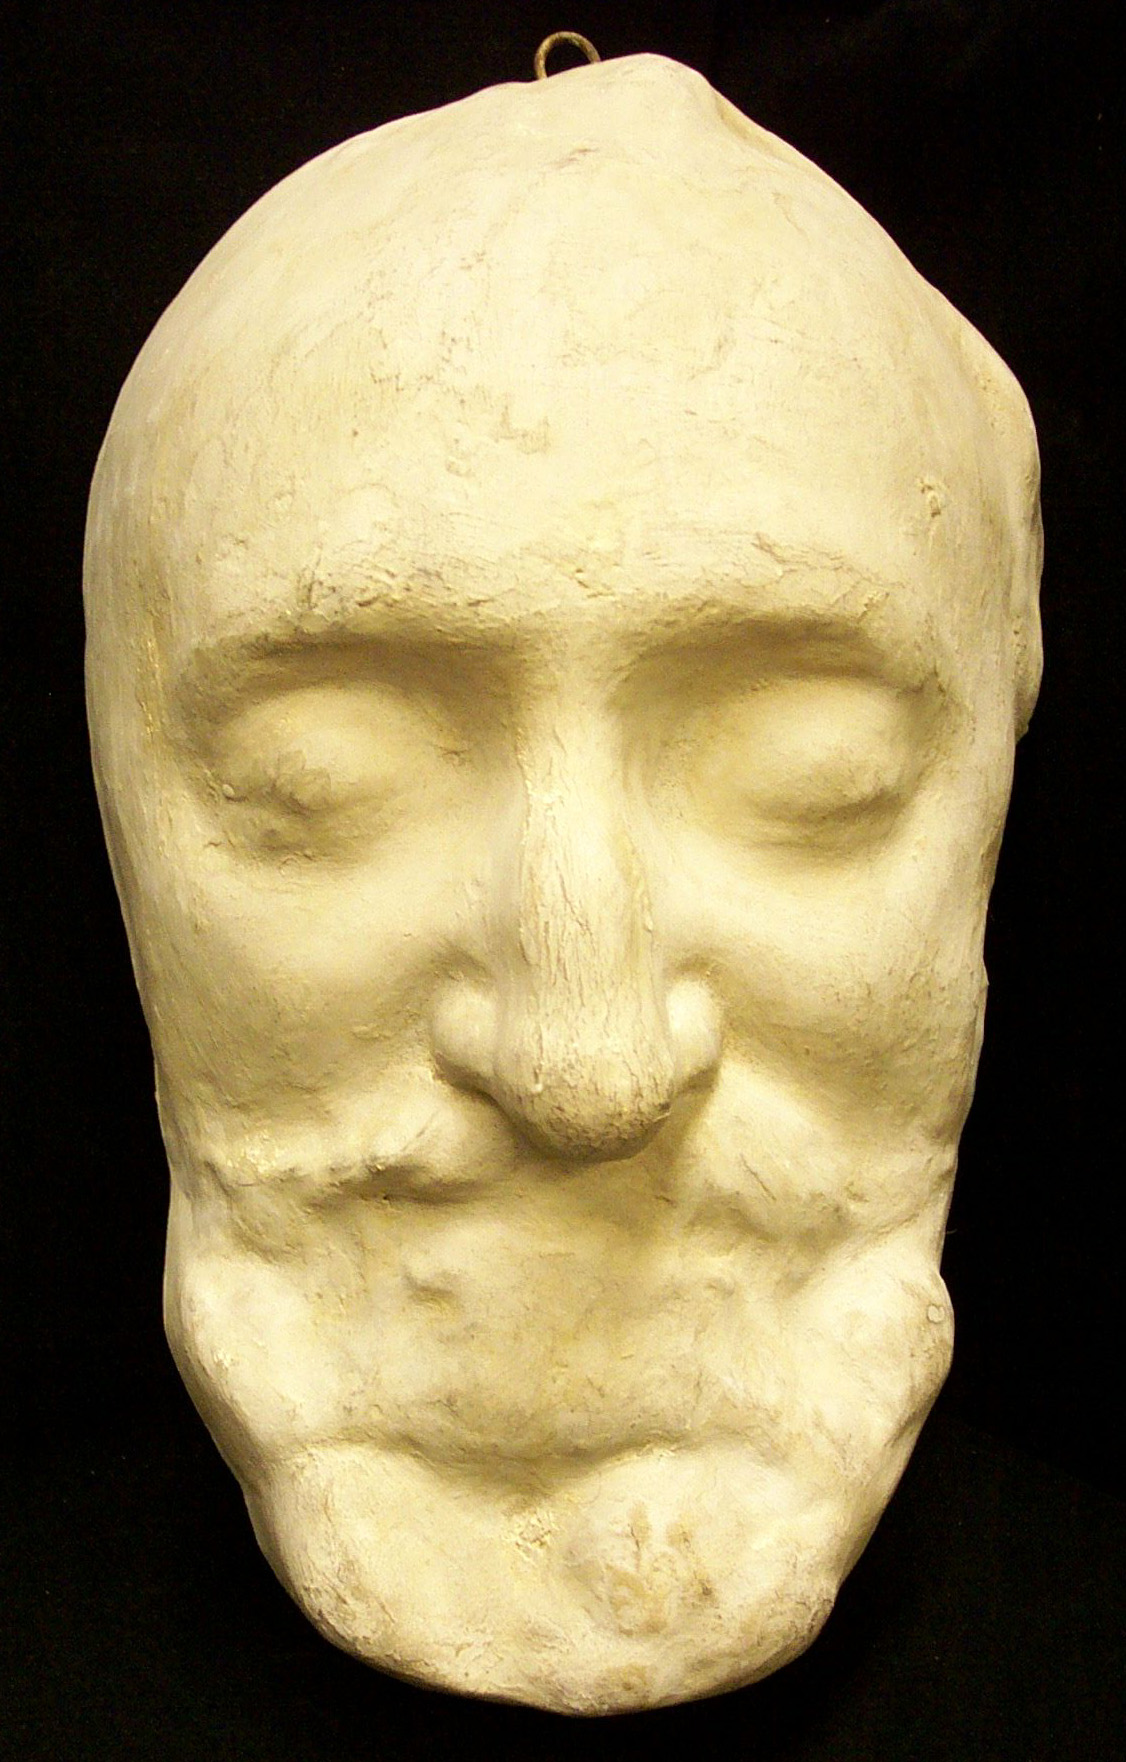 1000 images about death masks of famous people on pinterest john keats audio bible and effigy. Black Bedroom Furniture Sets. Home Design Ideas